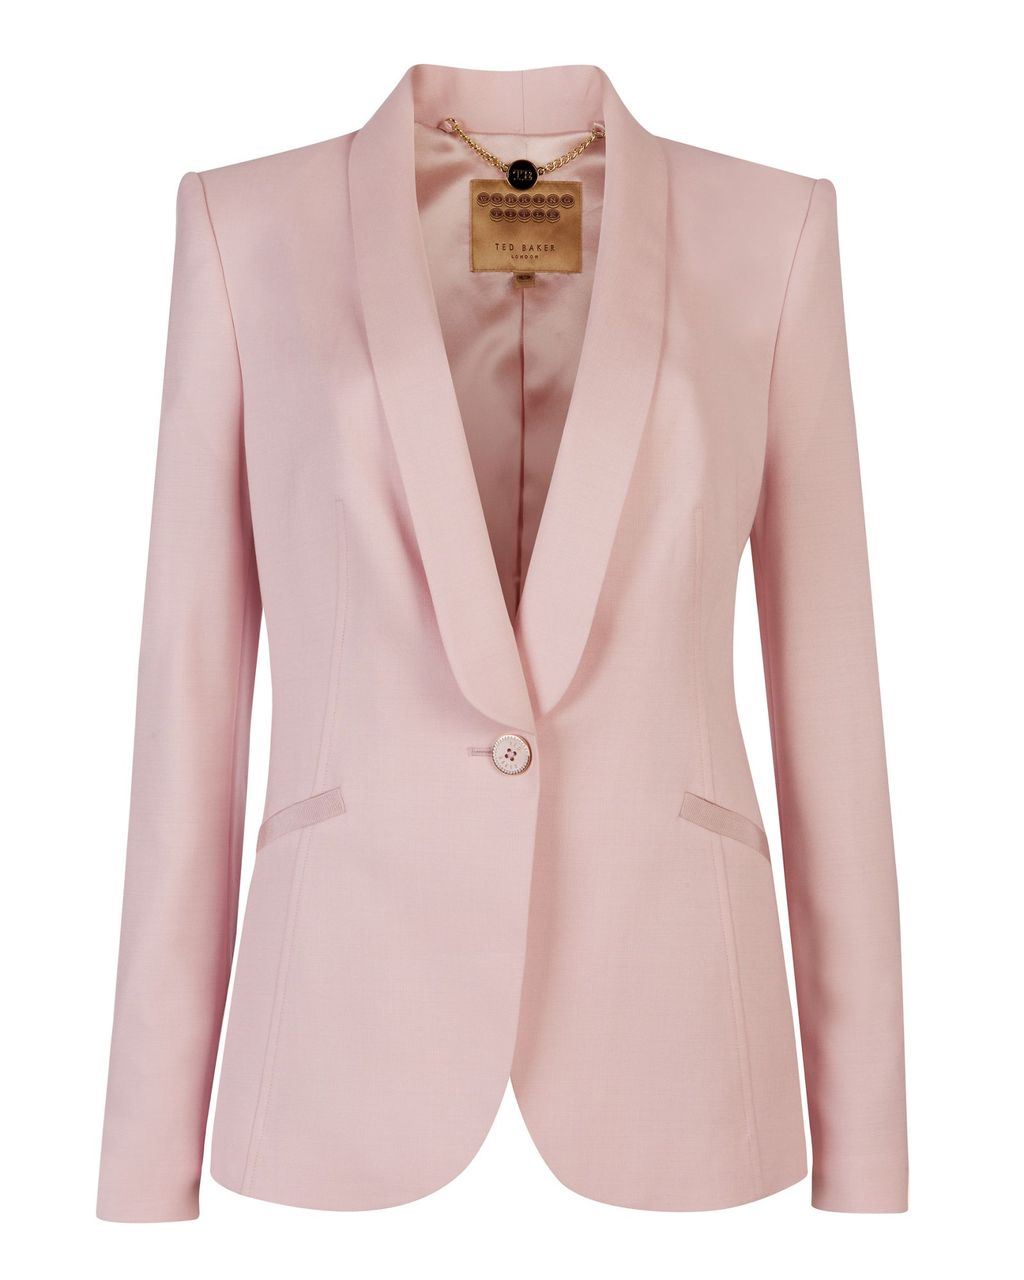 Perfect Womens Suits From LucyAlice  Hera Suit Jacket